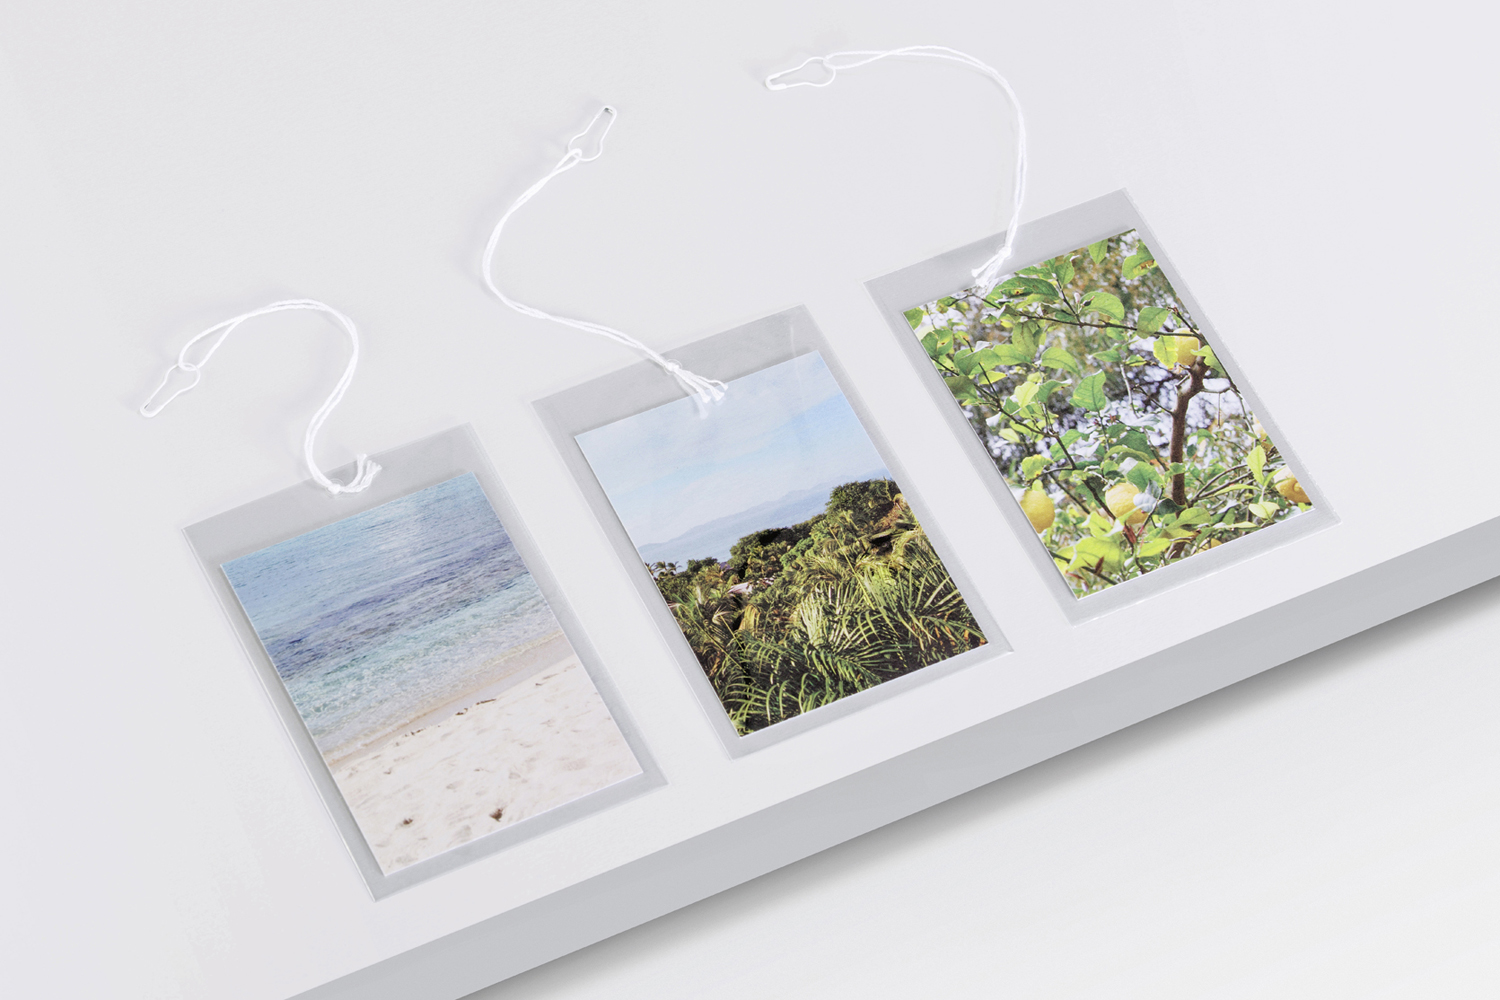 Brand identity and tags designed by Two Times Elliott for Australian fashion boutique in London The Dayrooms